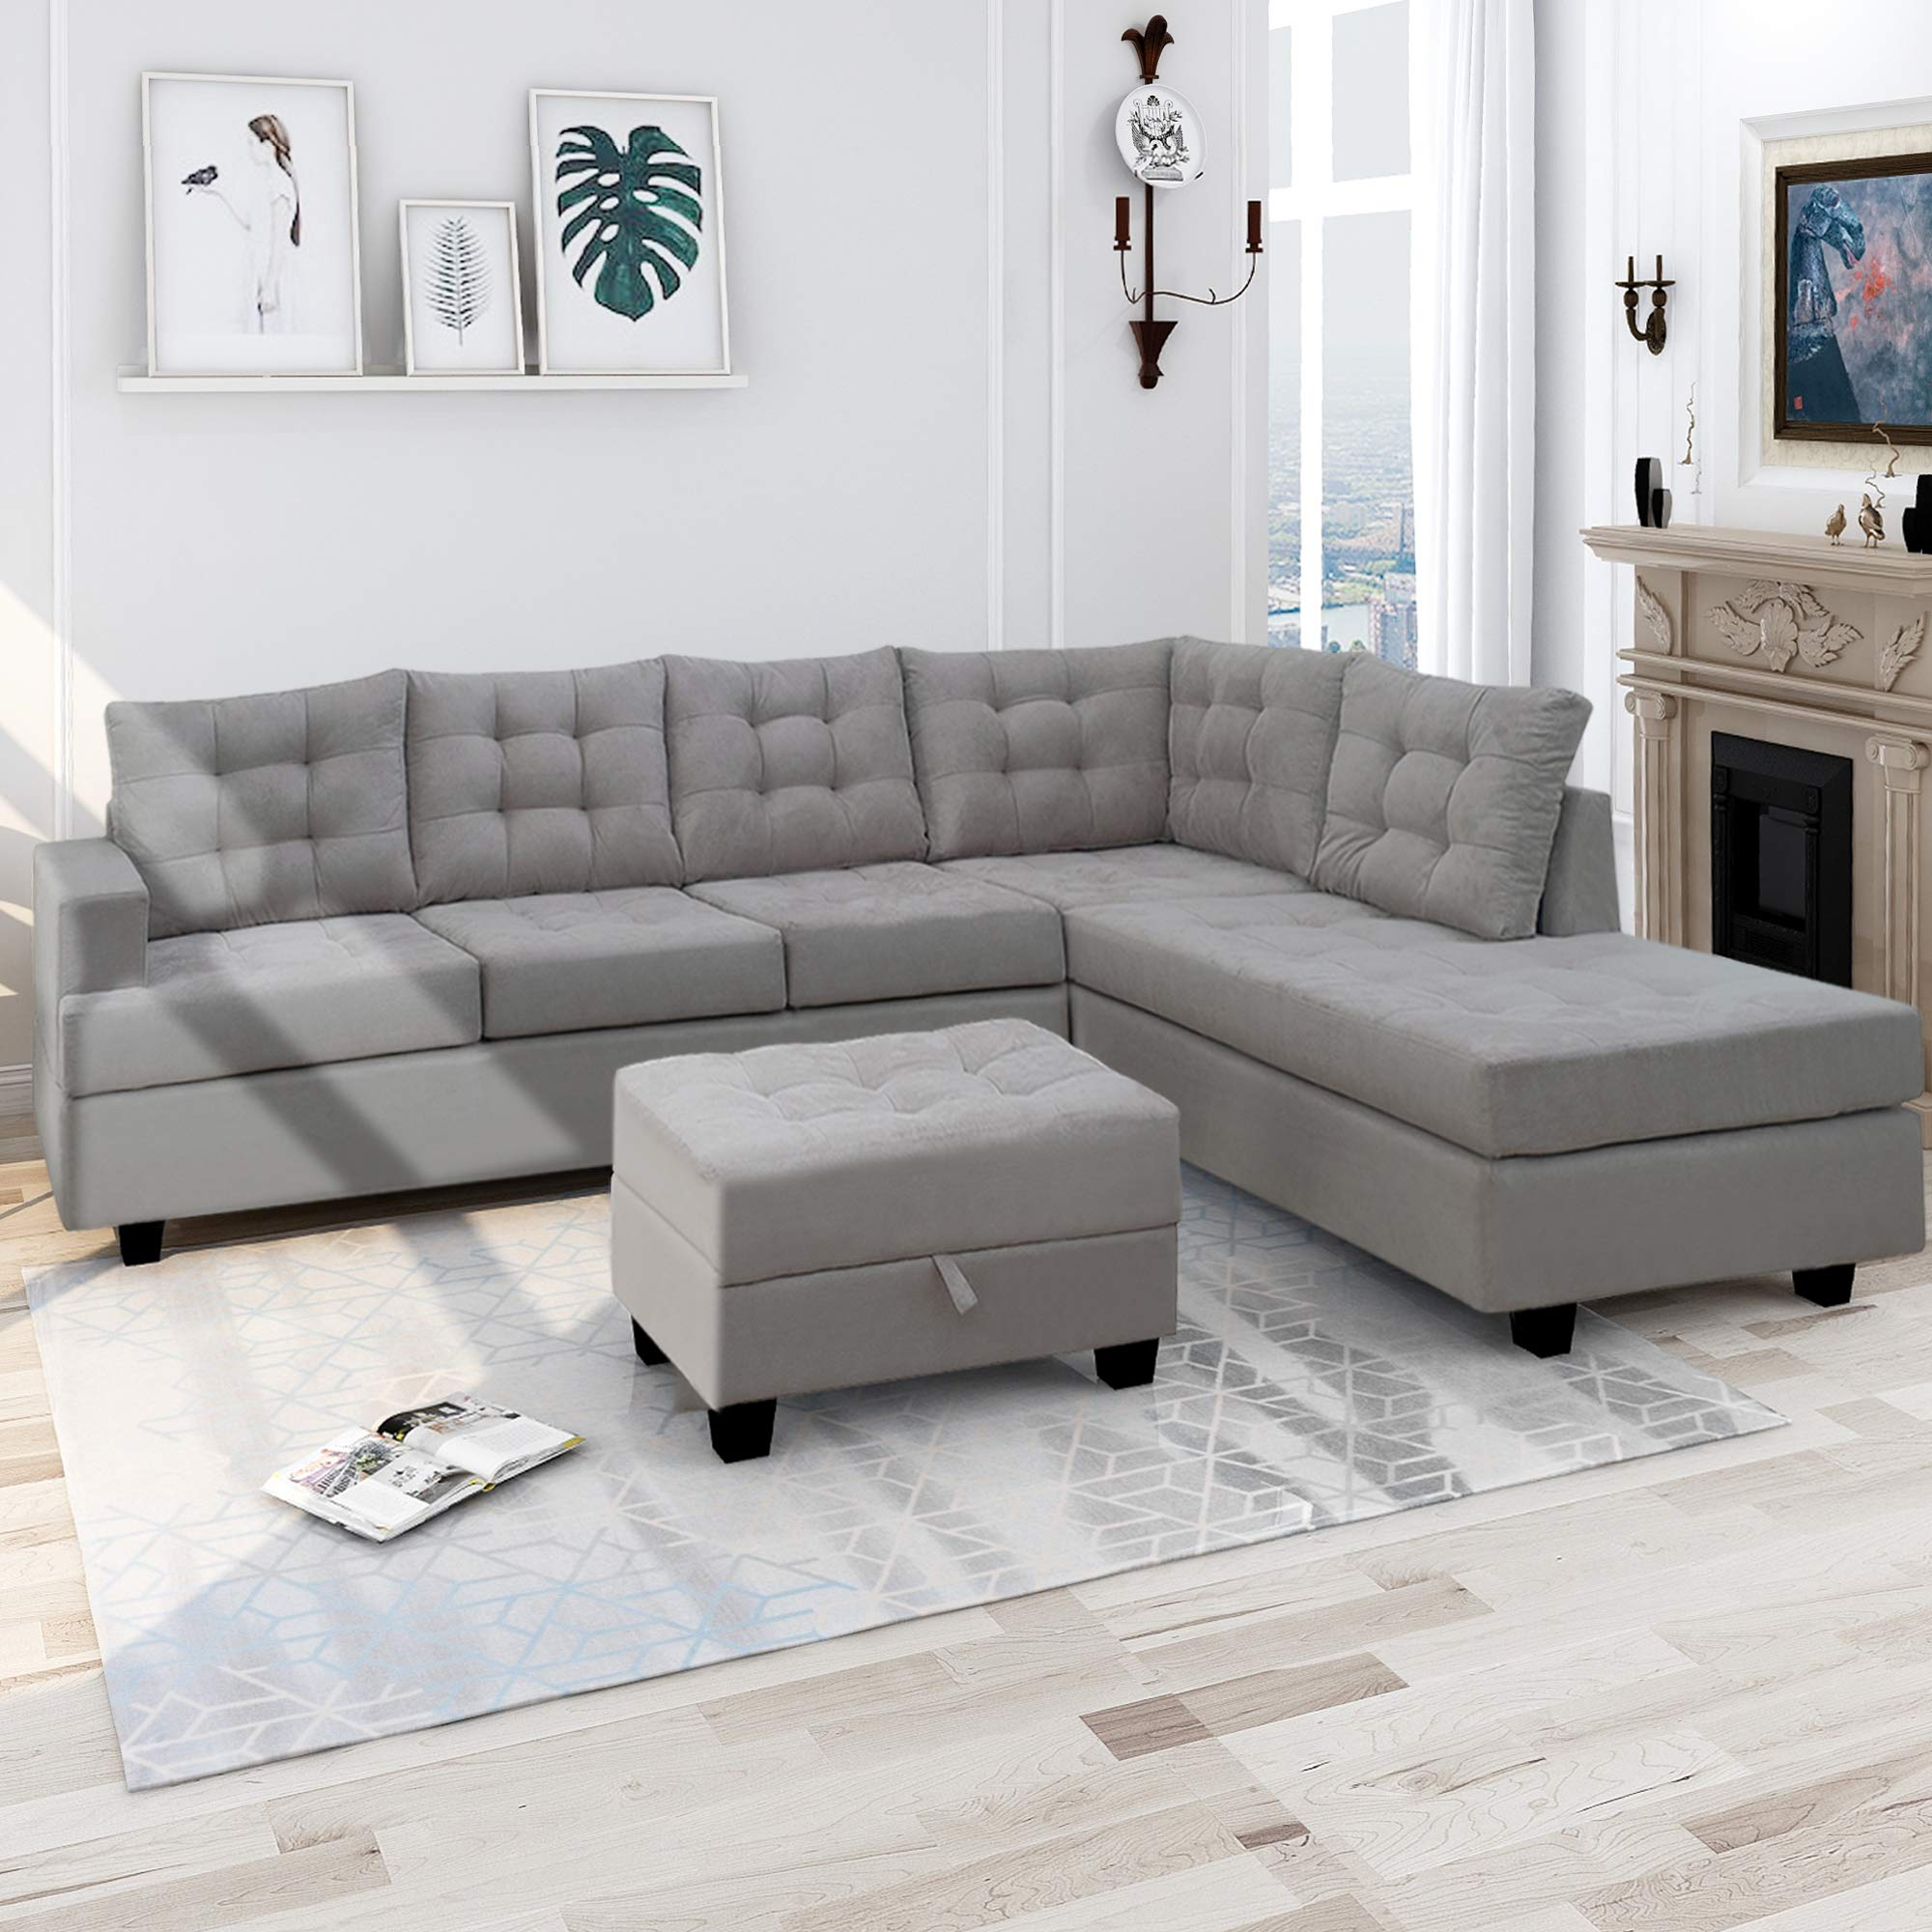 Harper & Bright Designs 3 Piece Sectional Sofa with Chaise Lounge Storage Ottoman Living Room Furniture Sofa (Gray) by Harper & Bright Designs